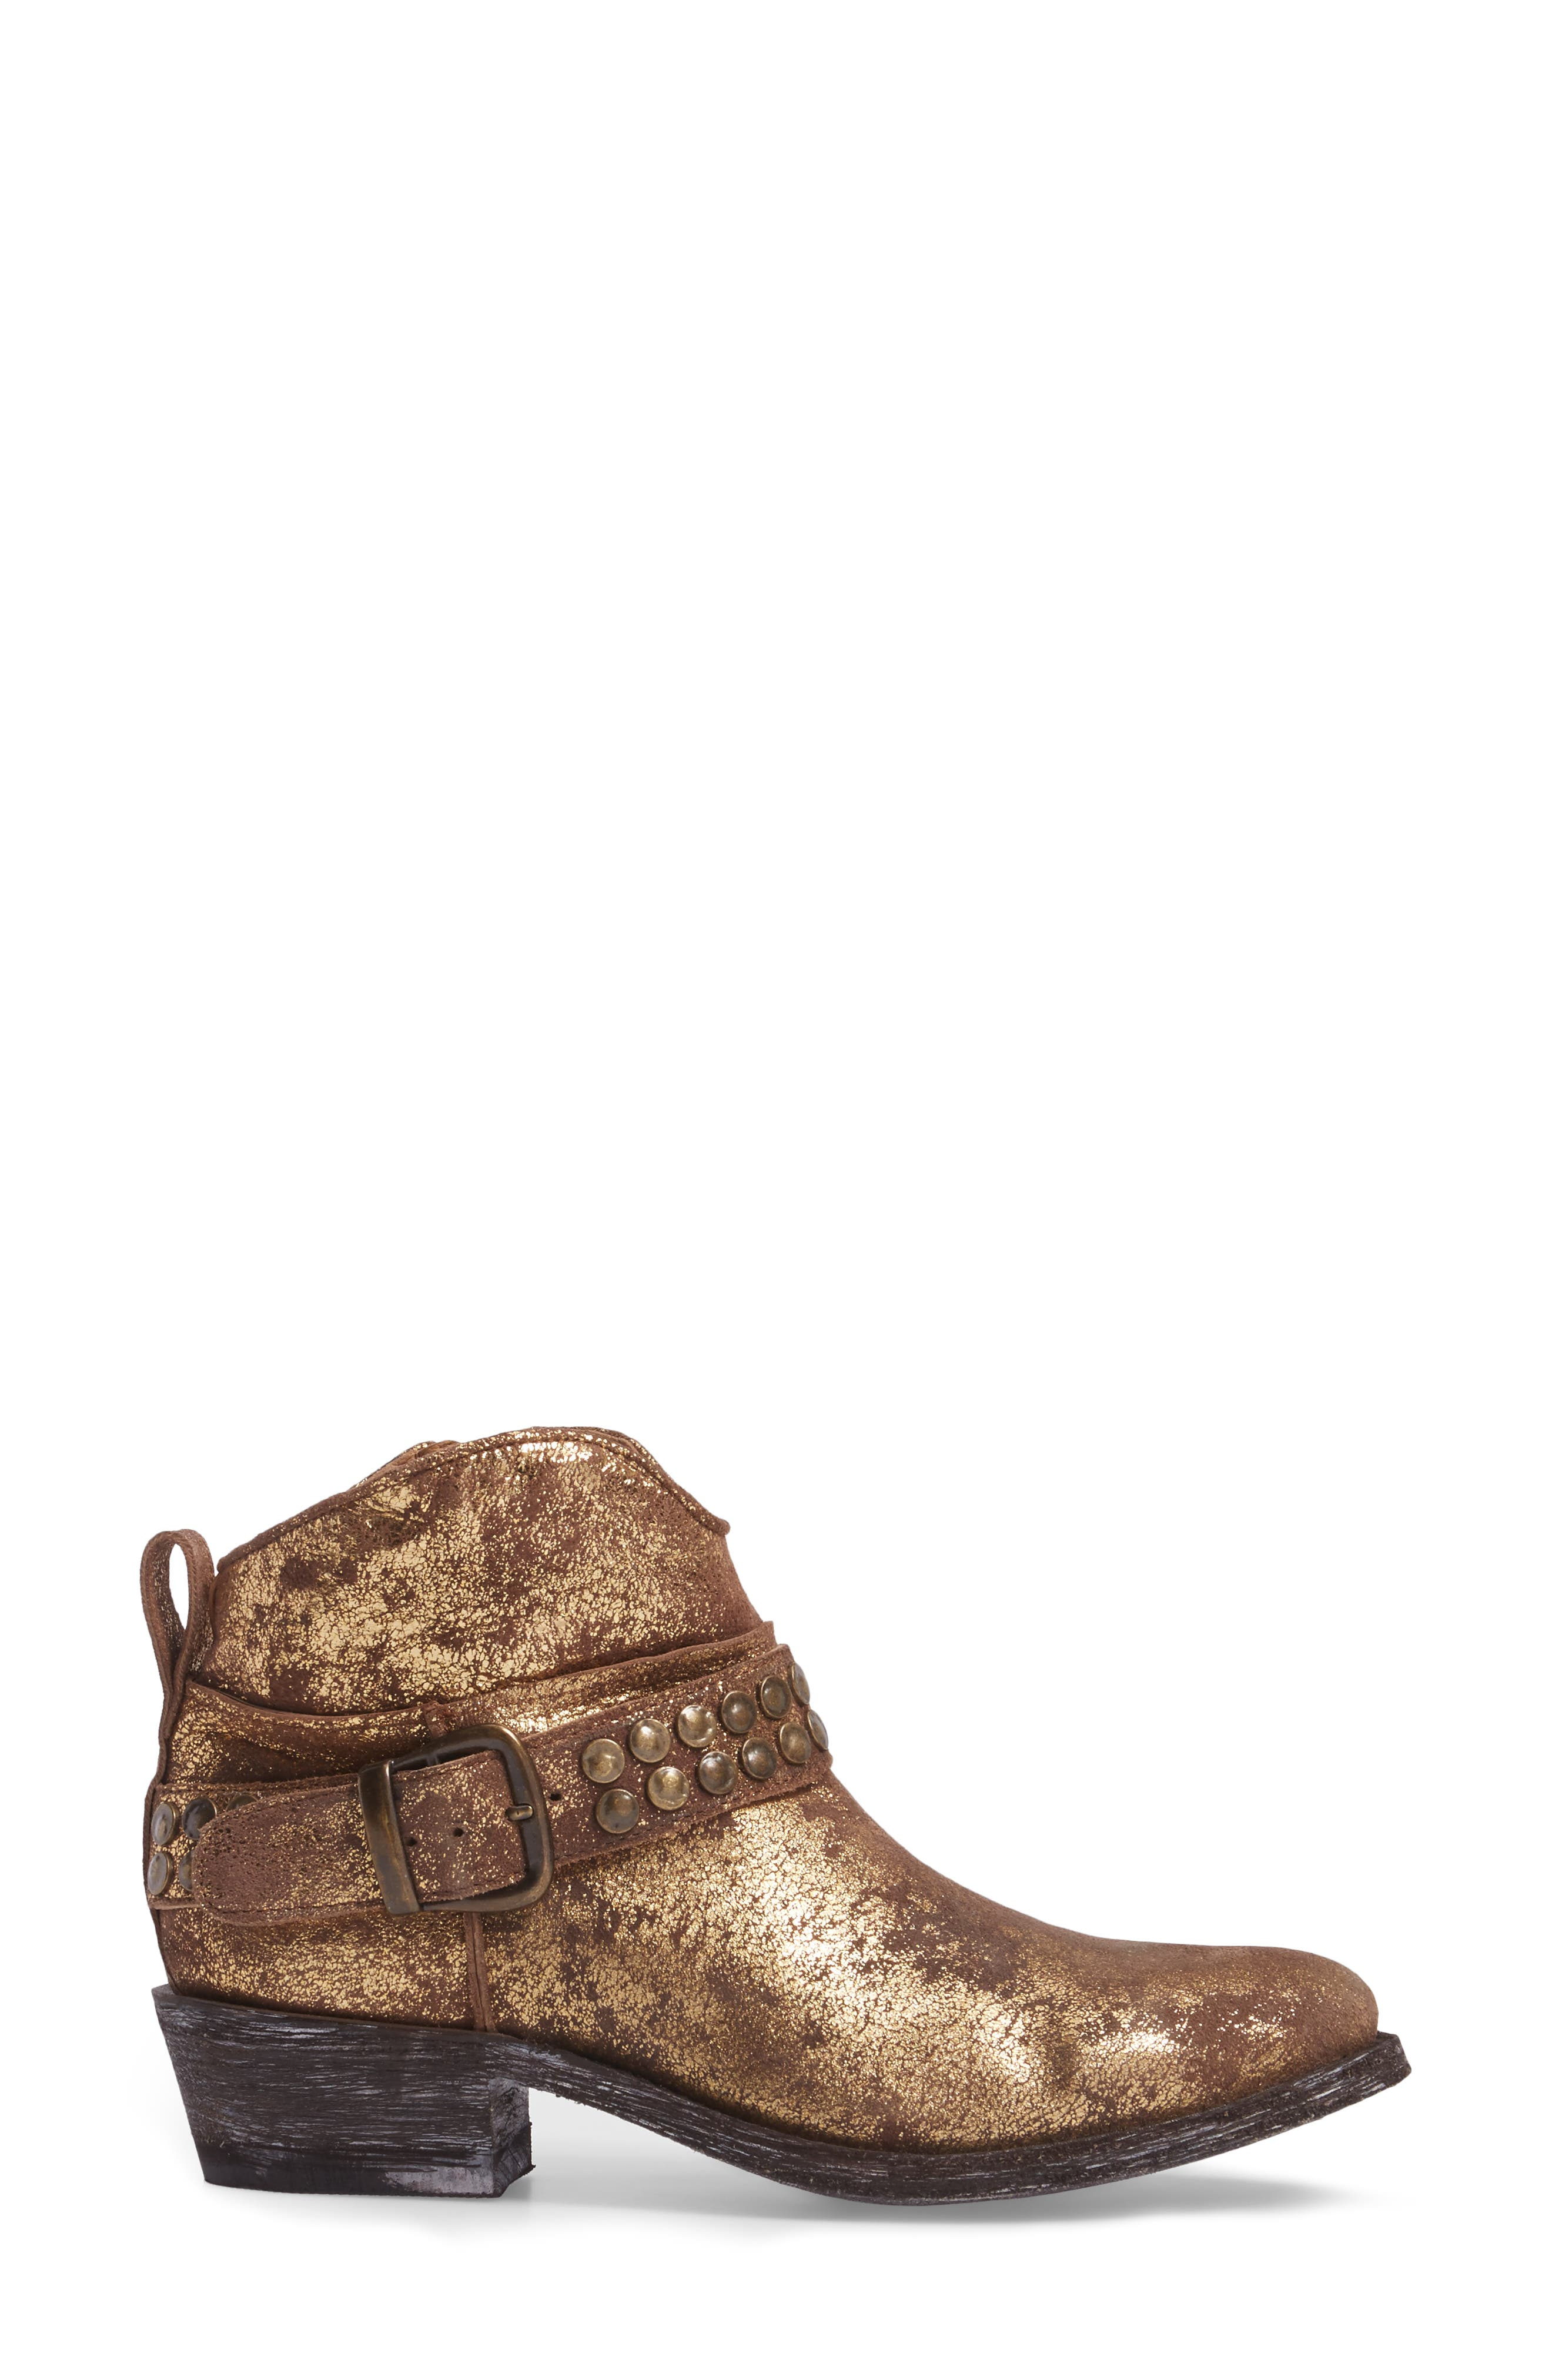 Serene Western Boot,                             Alternate thumbnail 3, color,                             COPPER LEATHER